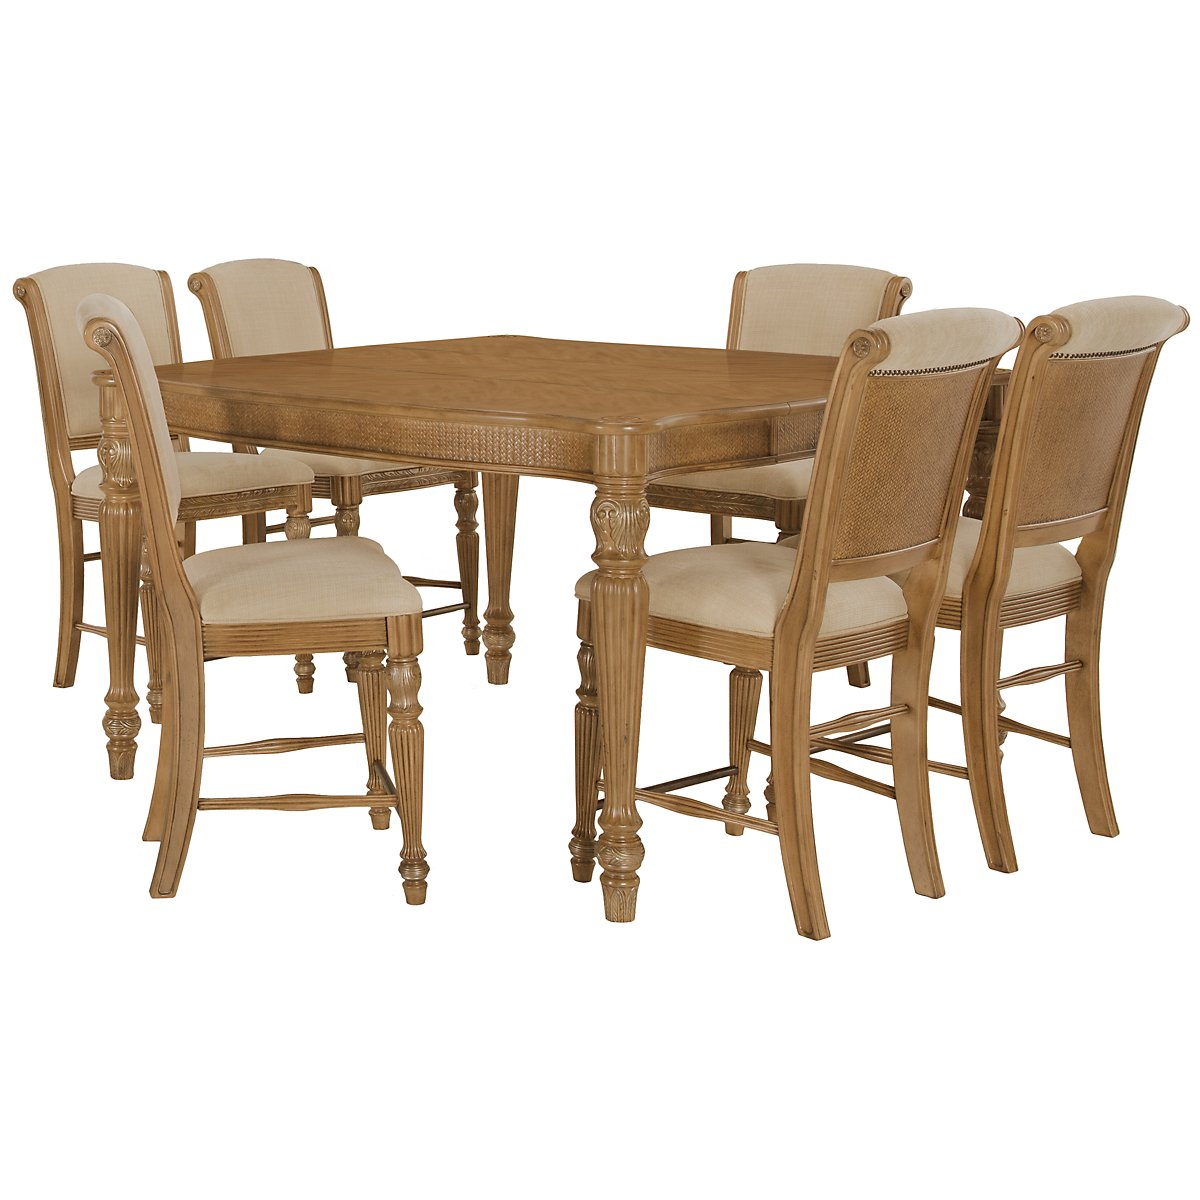 Tradewinds Light Tone Square High Table & 4 Upholstered Barstools